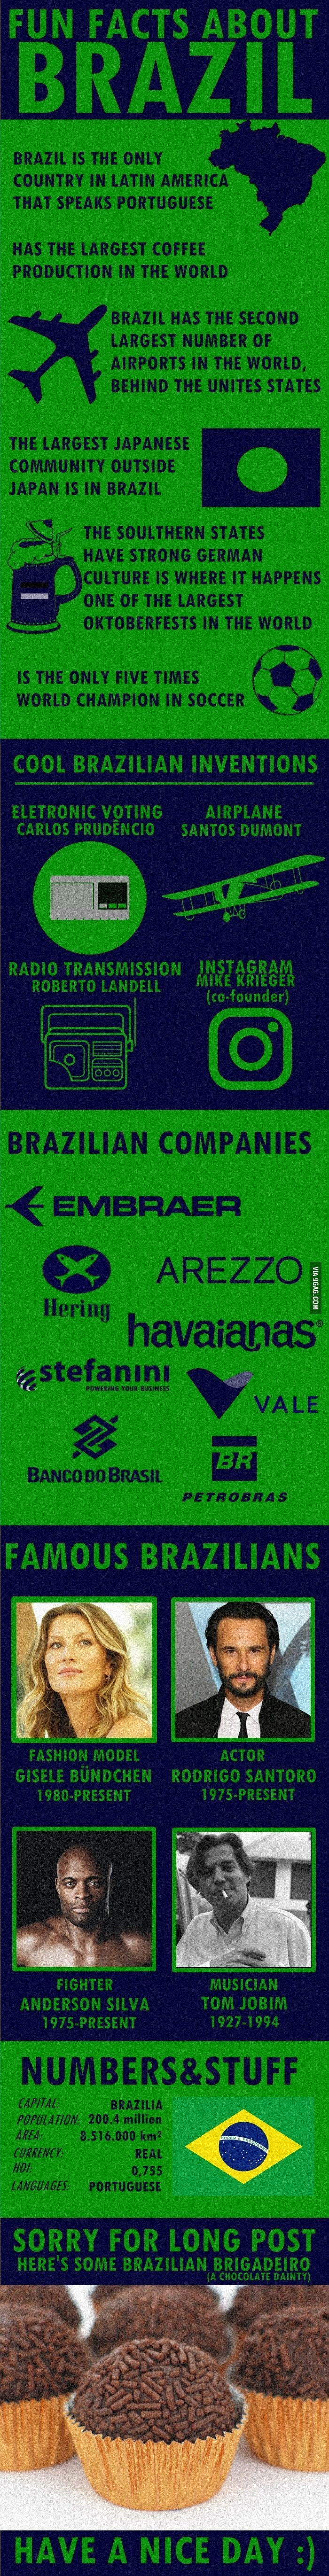 Fun facts about Brazil?